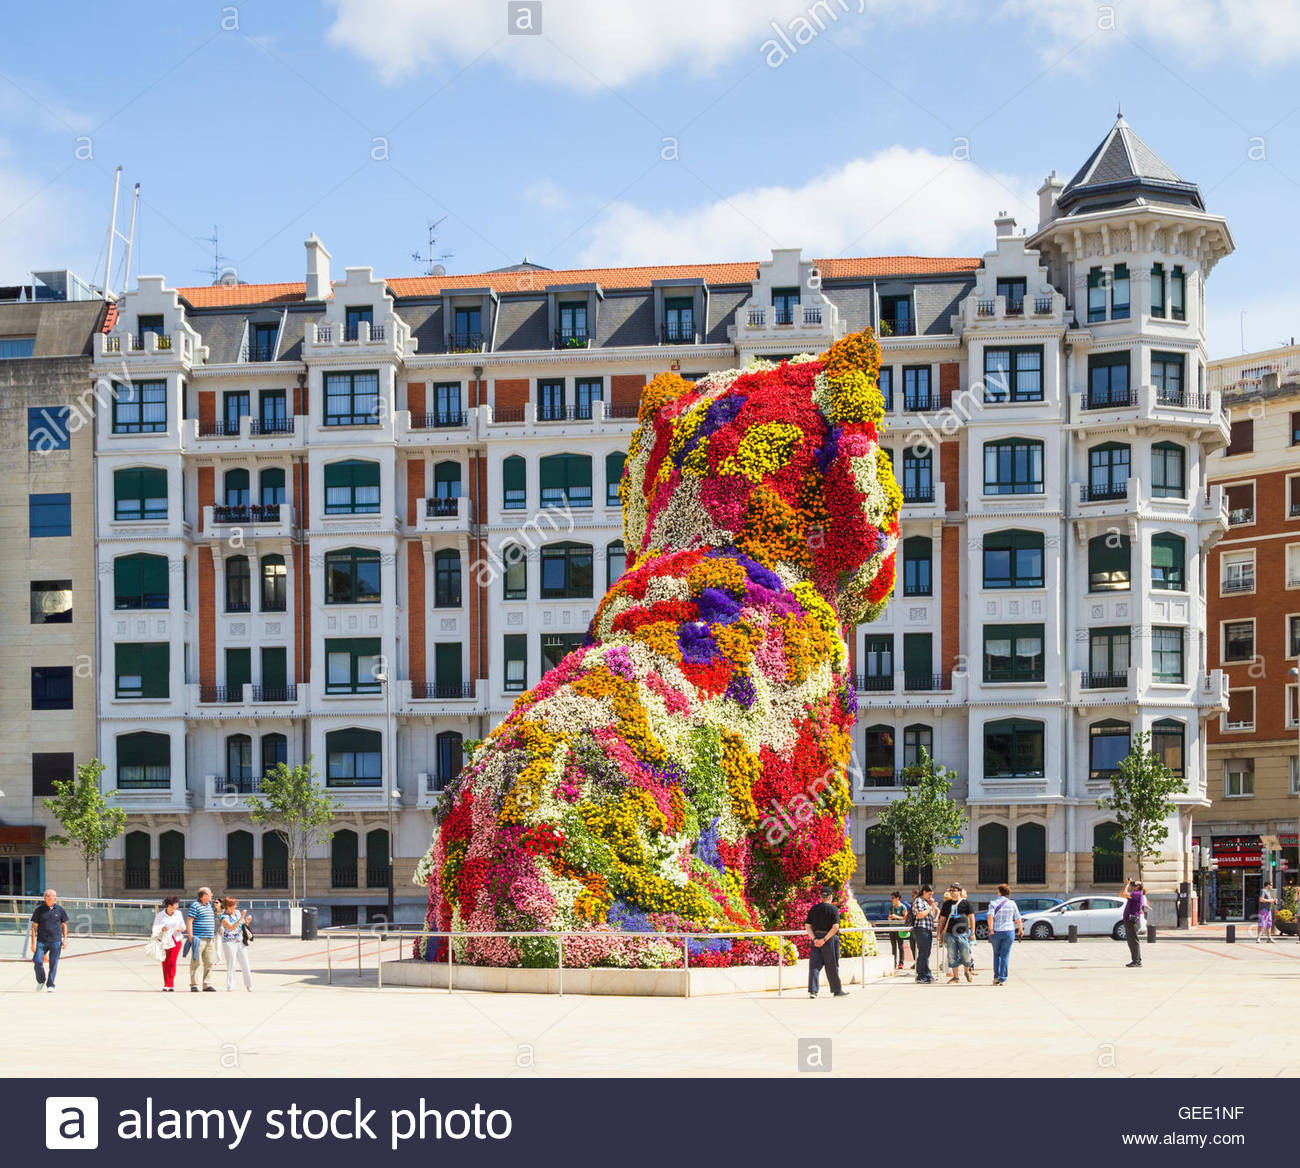 jeff koons puppy vase of jeff koons puppy sculpture stock photos jeff koons puppy sculpture regarding jeff koons puppy sculpture outside guggenheim museum in bilbao basque country spain stock